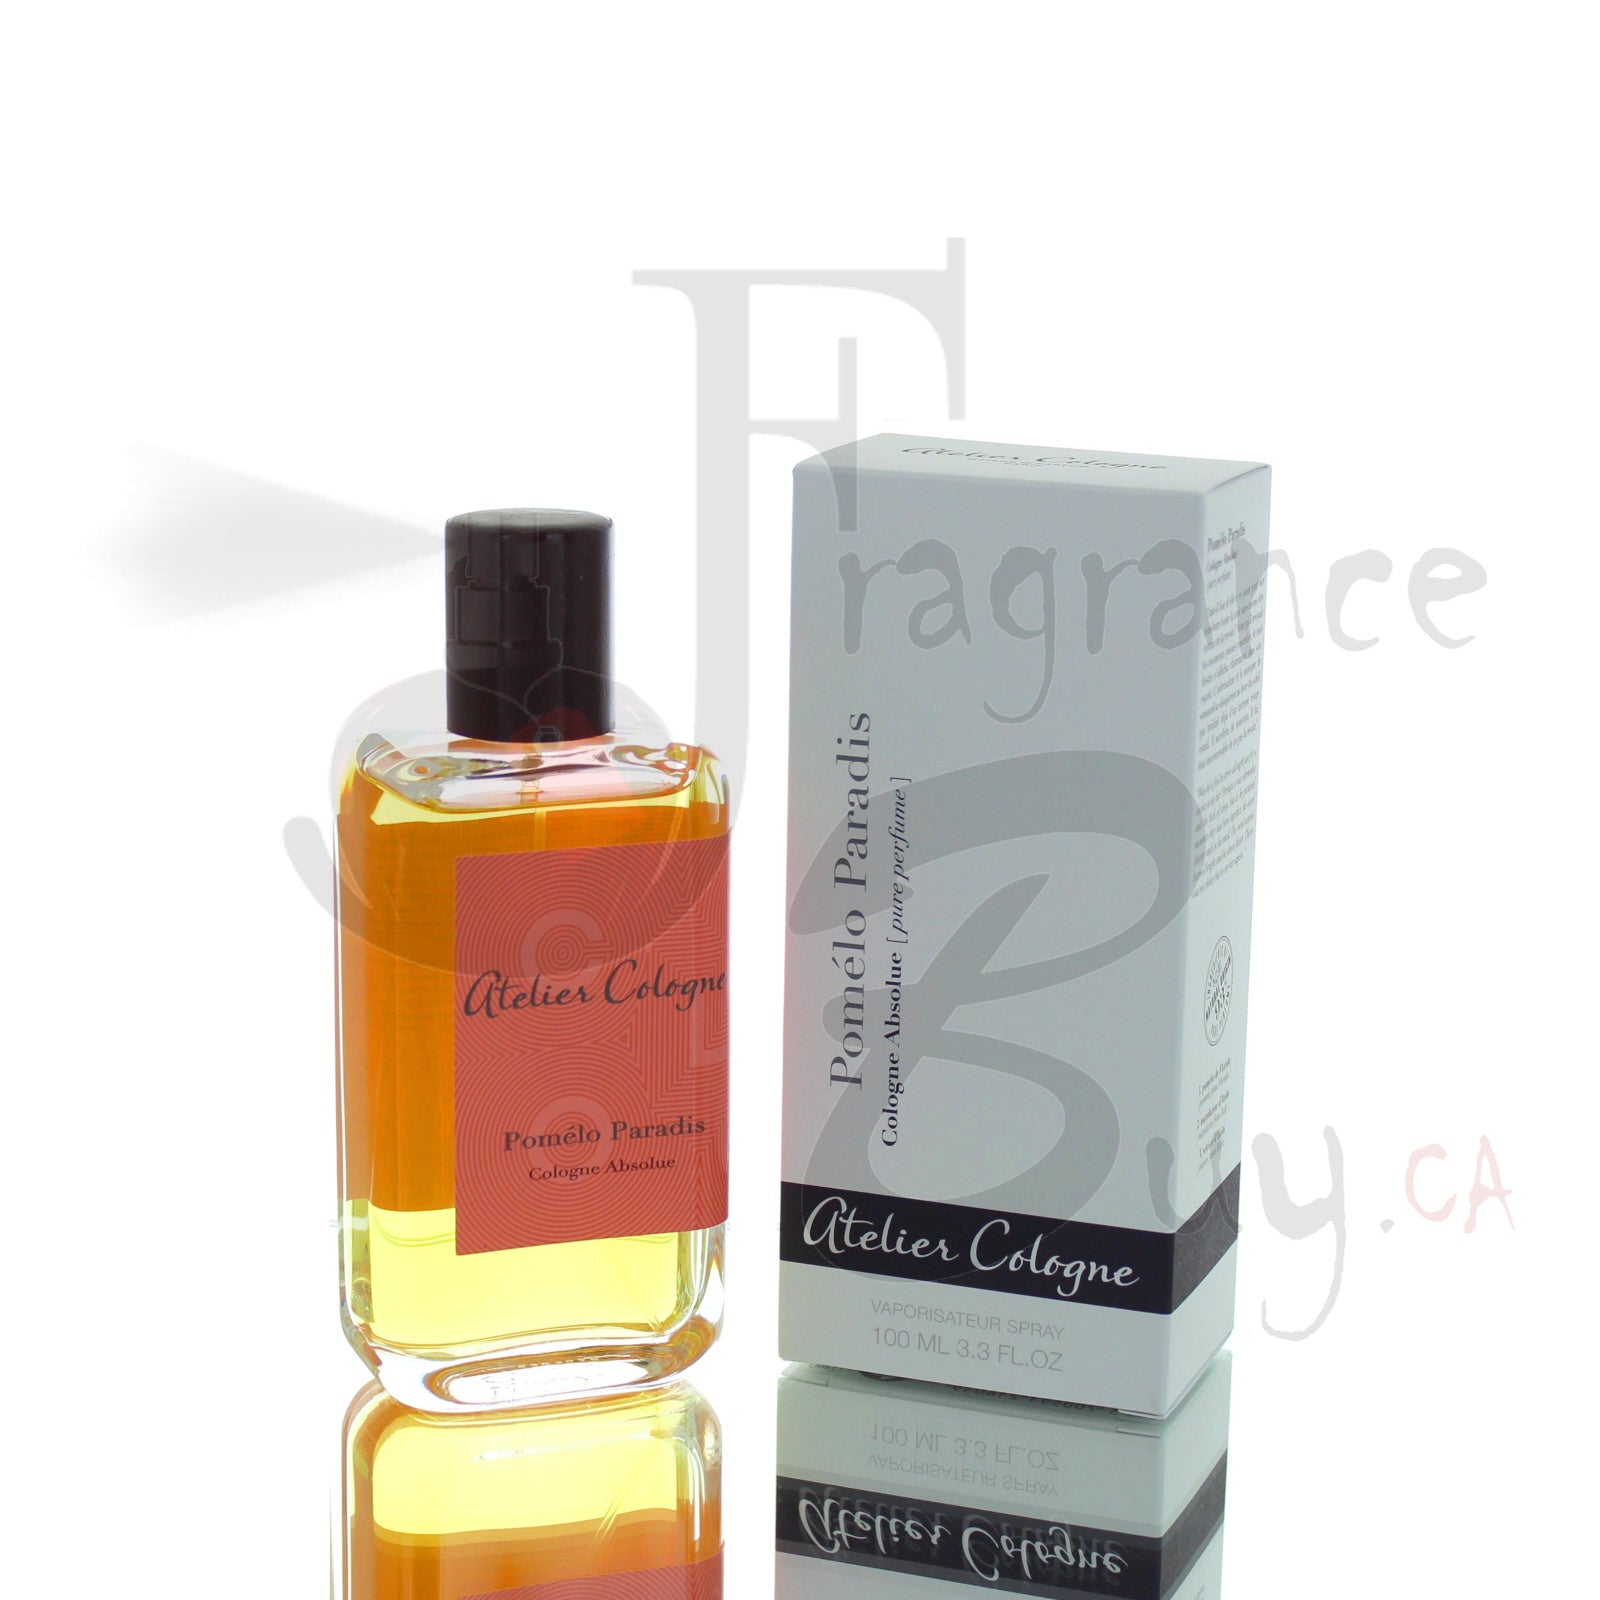 Atelier Cologne Pomelo Paradis Cologne Absolue For Man/Woman